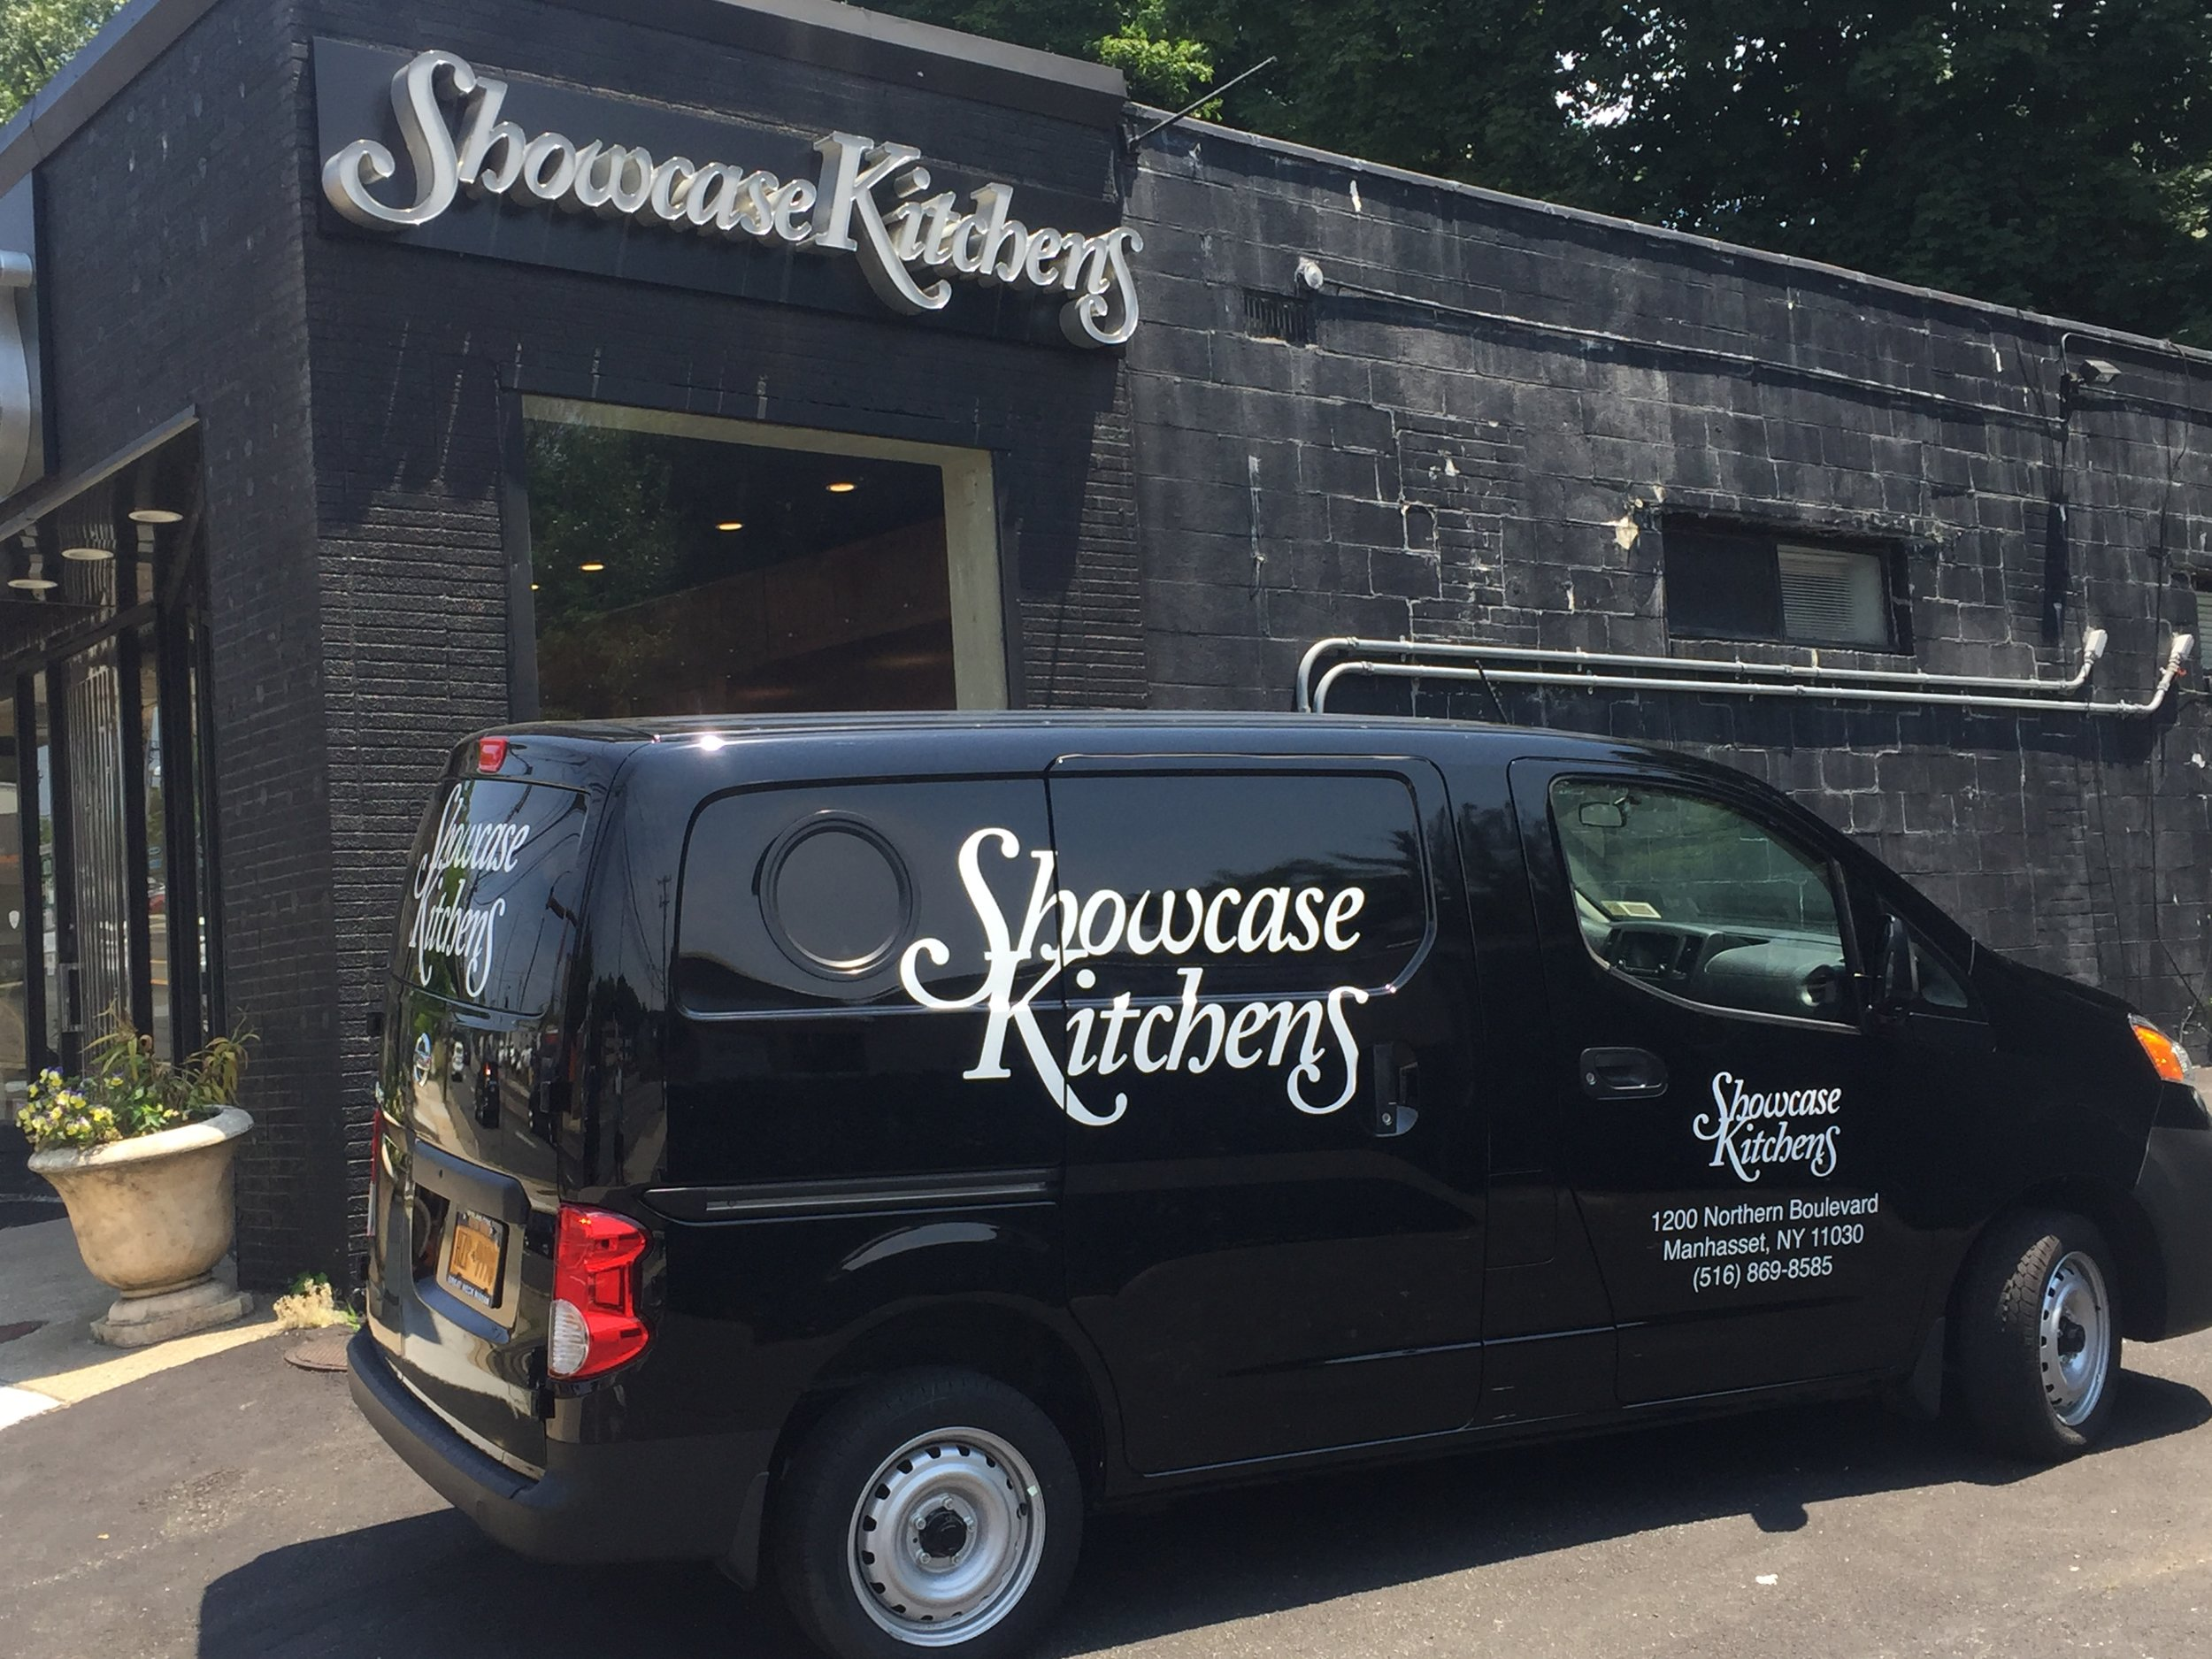 Showcase Kitchens van in front of Showcase Baths building